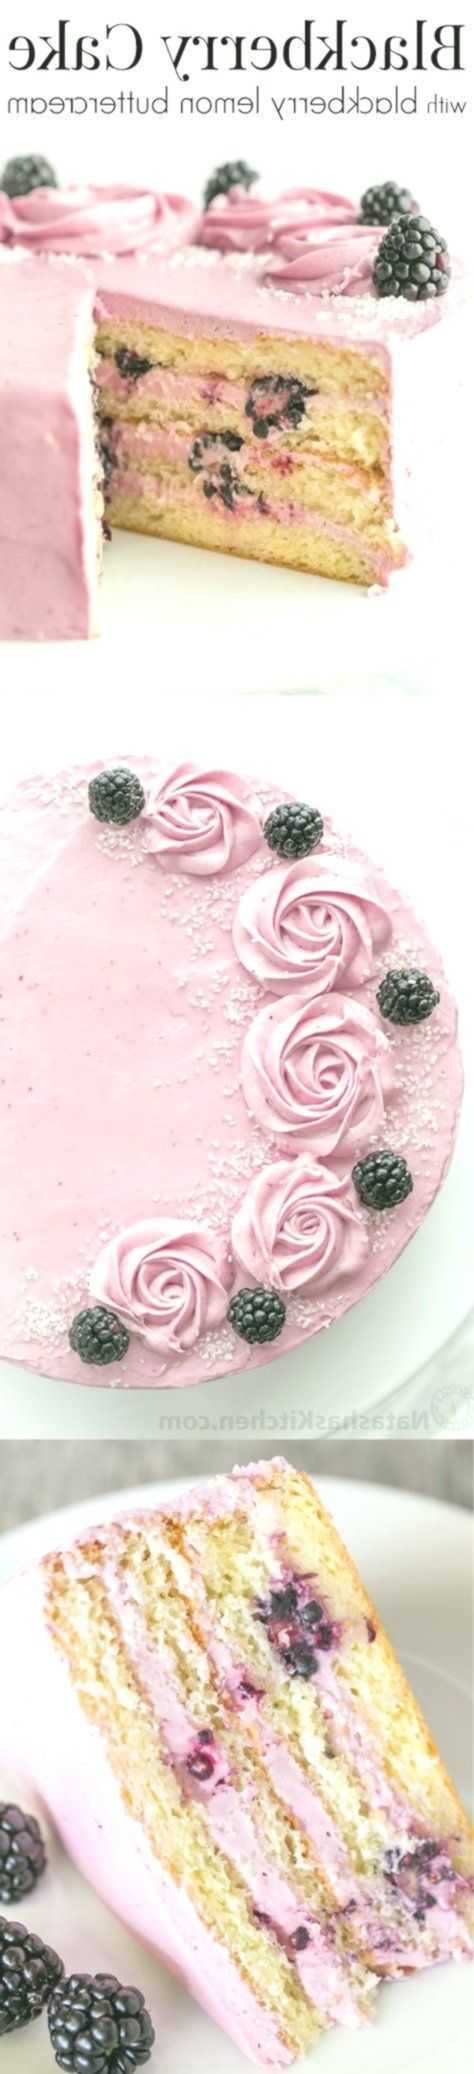 Soft and moist blackberry cake with fluffy blackberry lemon buttercream frosting... - #blackberry #buttercream #cake #fluffy #frosting #lemon #moist #soft #lemonbuttercream Soft and moist blackberry cake with fluffy blackberry lemon buttercream frosting... - #blackberry #buttercream #cake #fluffy #frosting #lemon #moist #soft #lemonbuttercream Soft and moist blackberry cake with fluffy blackberry lemon buttercream frosting... - #blackberry #buttercream #cake #fluffy #frosting #lemon #moist #soft #lemonbuttercream